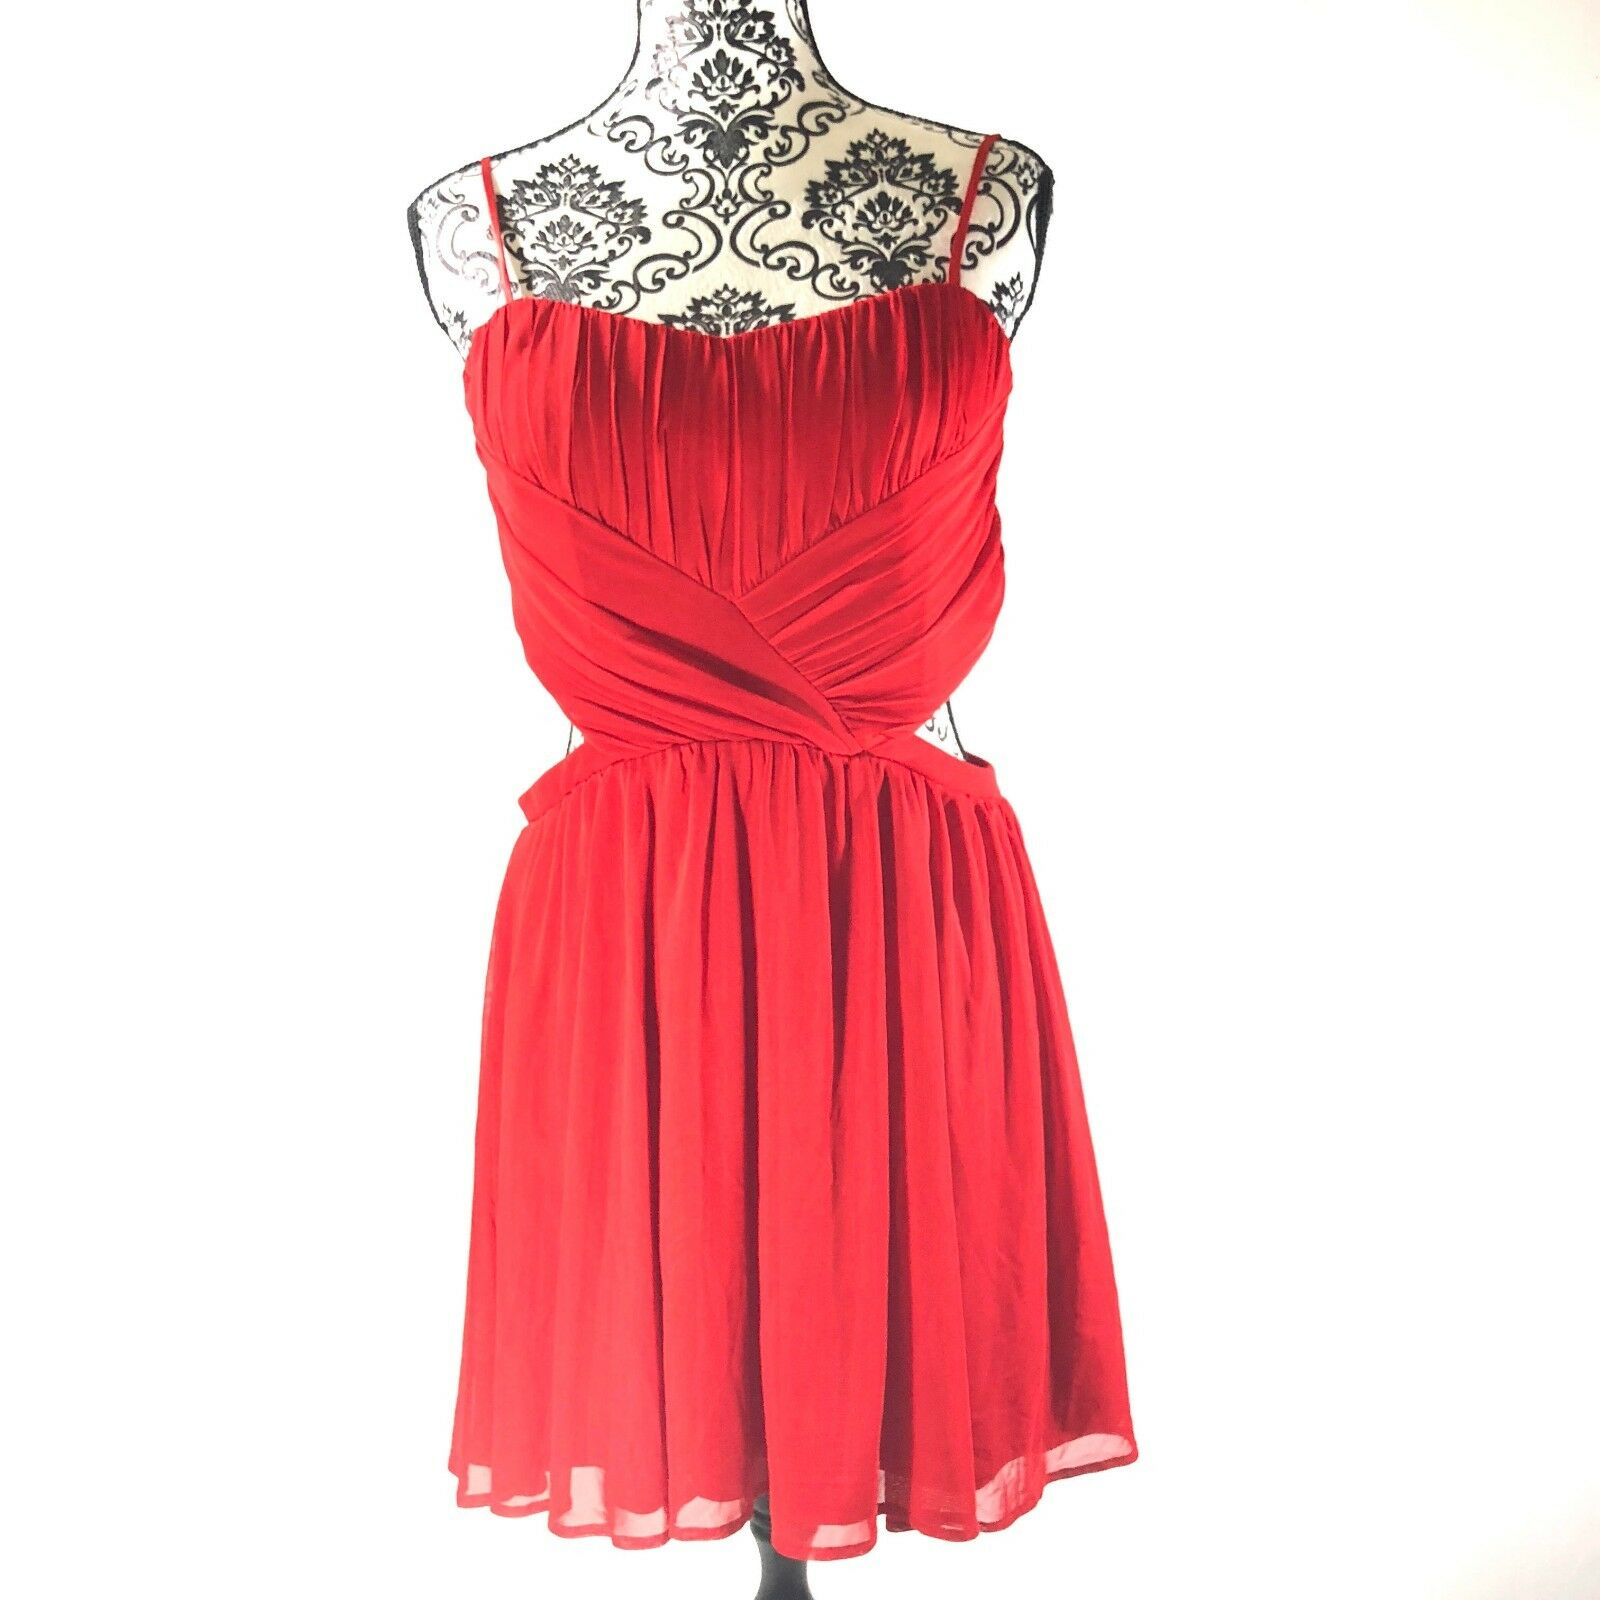 NWT Steppin' Out Dress SZ Large Ruched Cutout Sides Mini Sleeveless Pleated Red